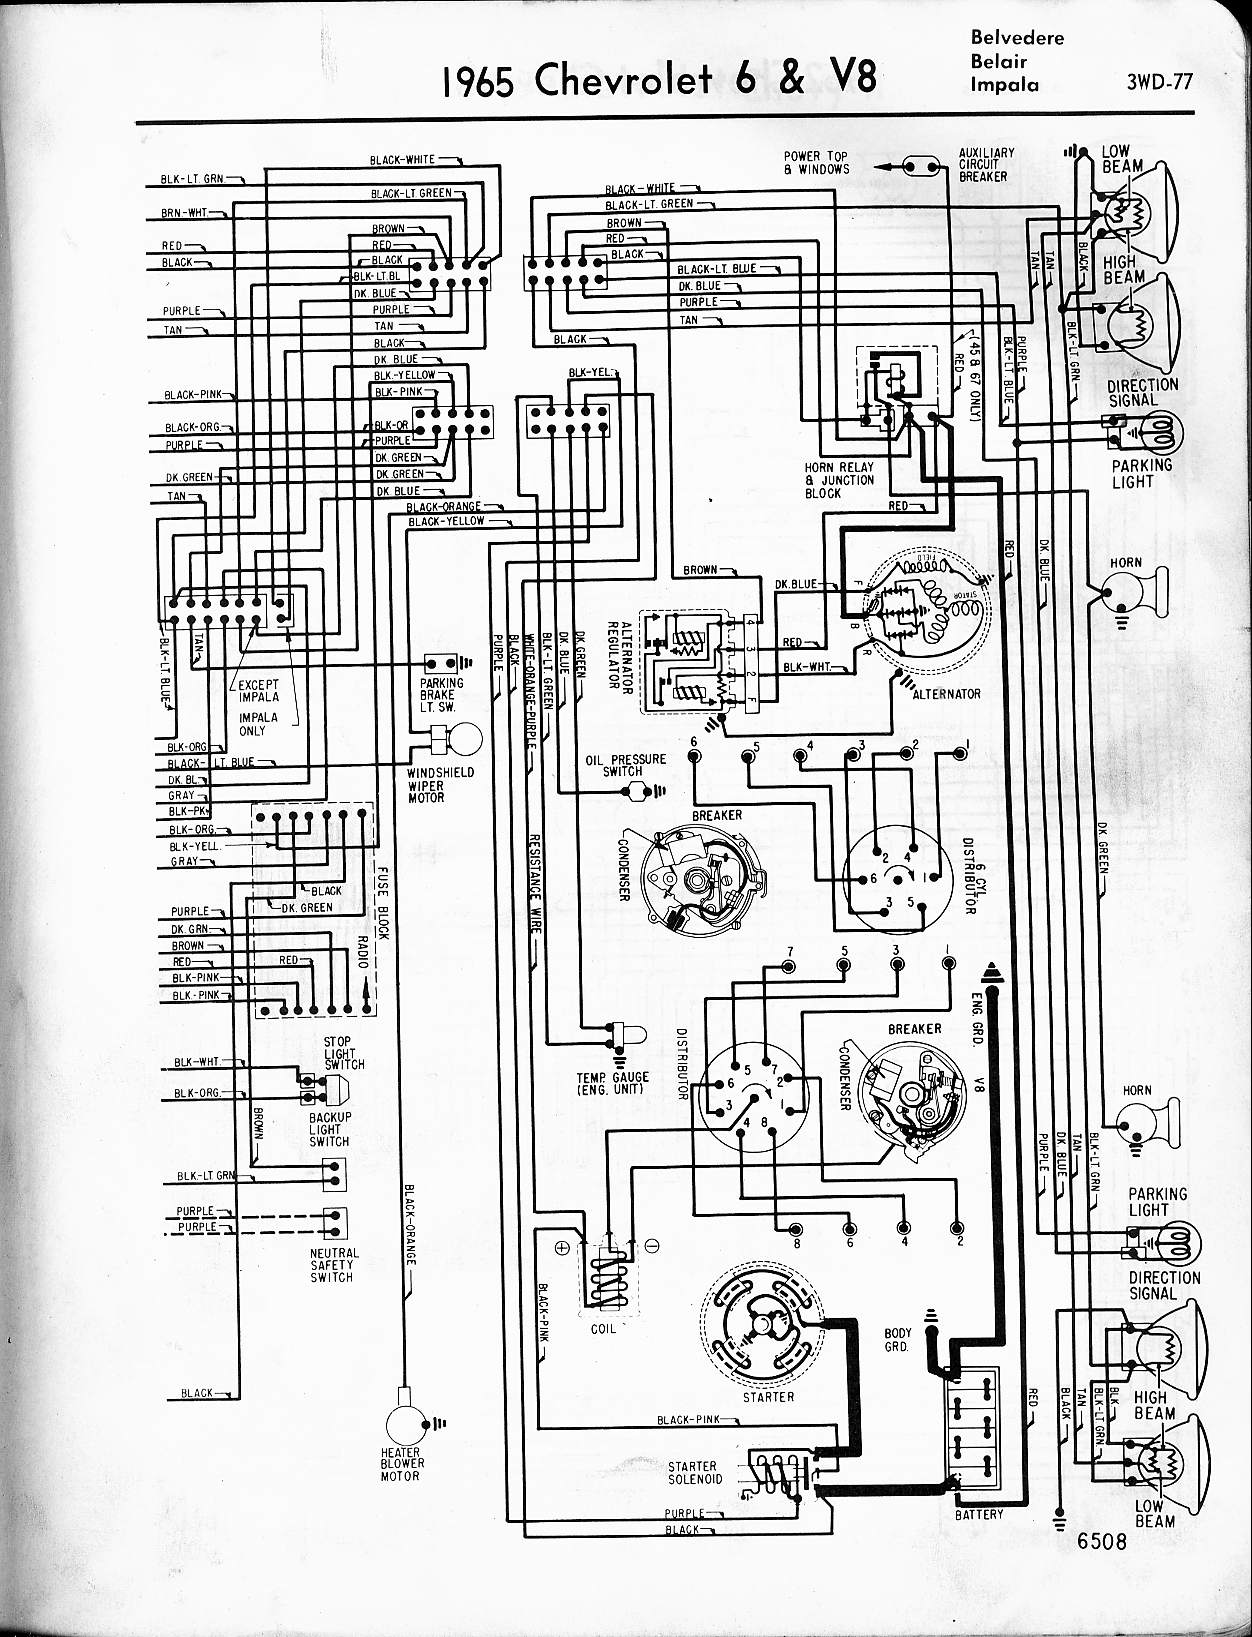 1965 Chevrolet Wiring Diagram Circuit Schematic Chevy Schematics 57 65 Diagrams C10 6 V8 Biscayne